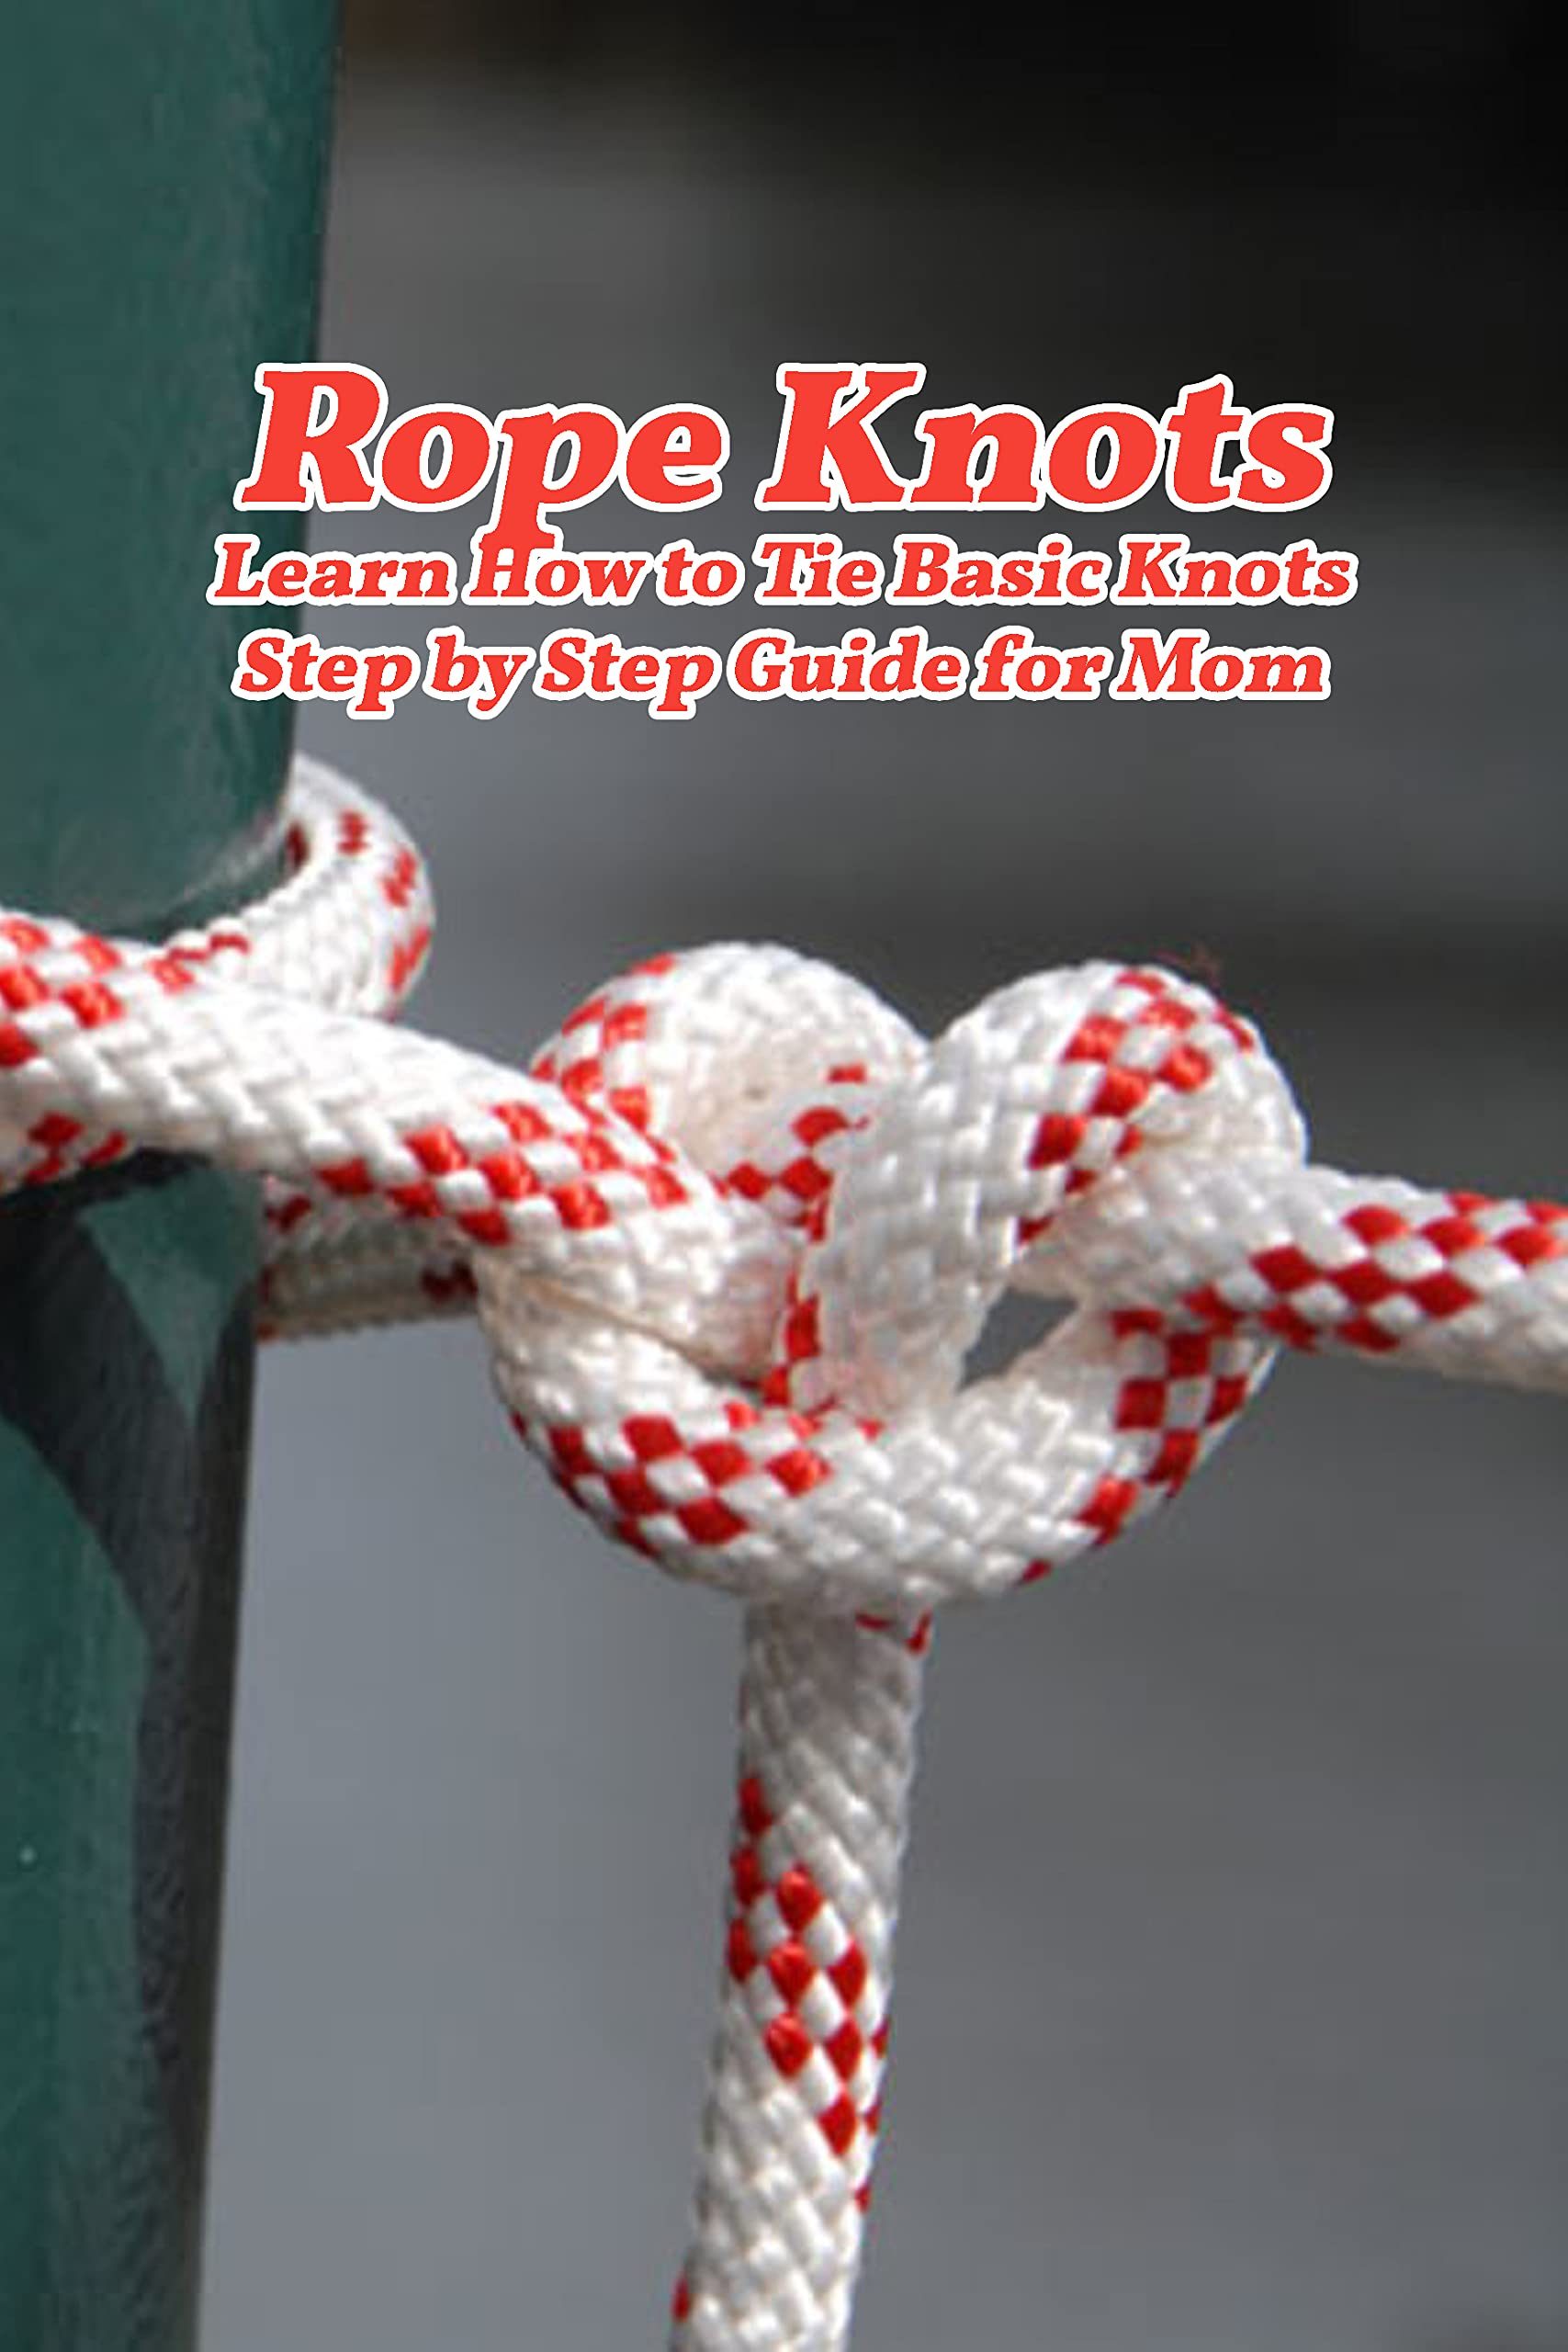 Rope Knots: Learn How to Tie Basic Knots - Step by Step Guide for Mom: DIY Macrame Mother's Day Gifts